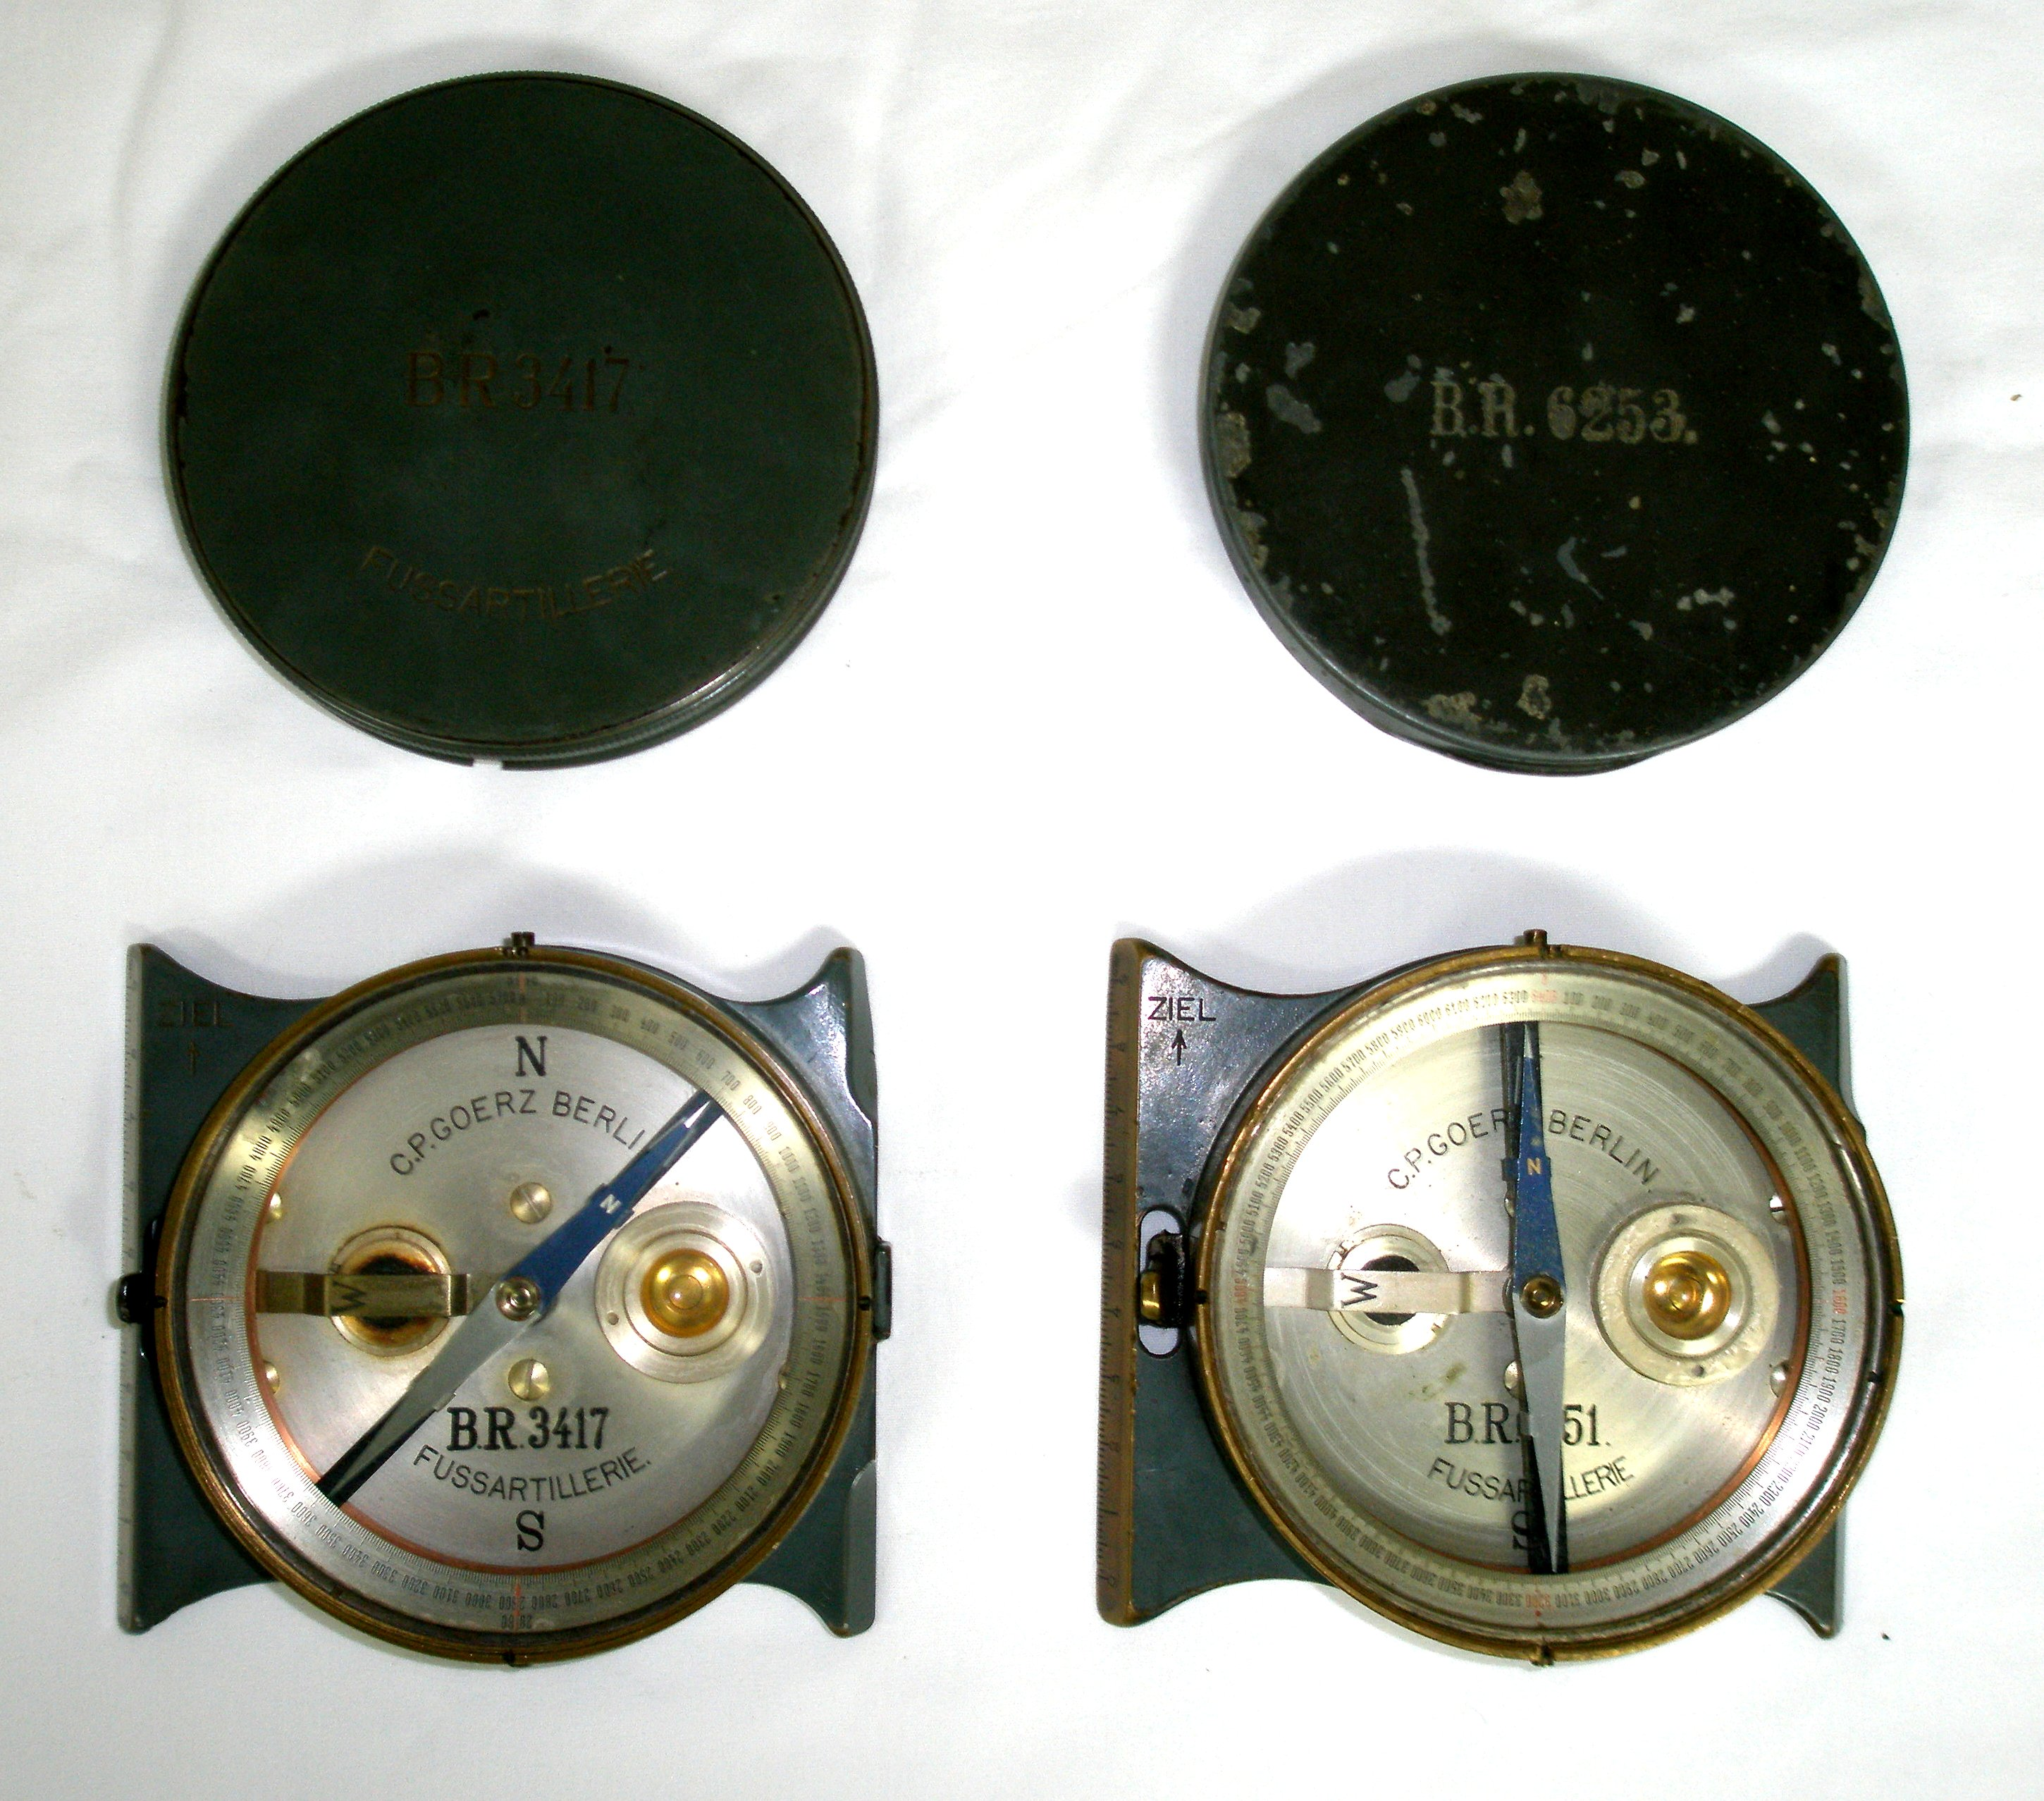 5760 & 6400 scale compass for aiming circle